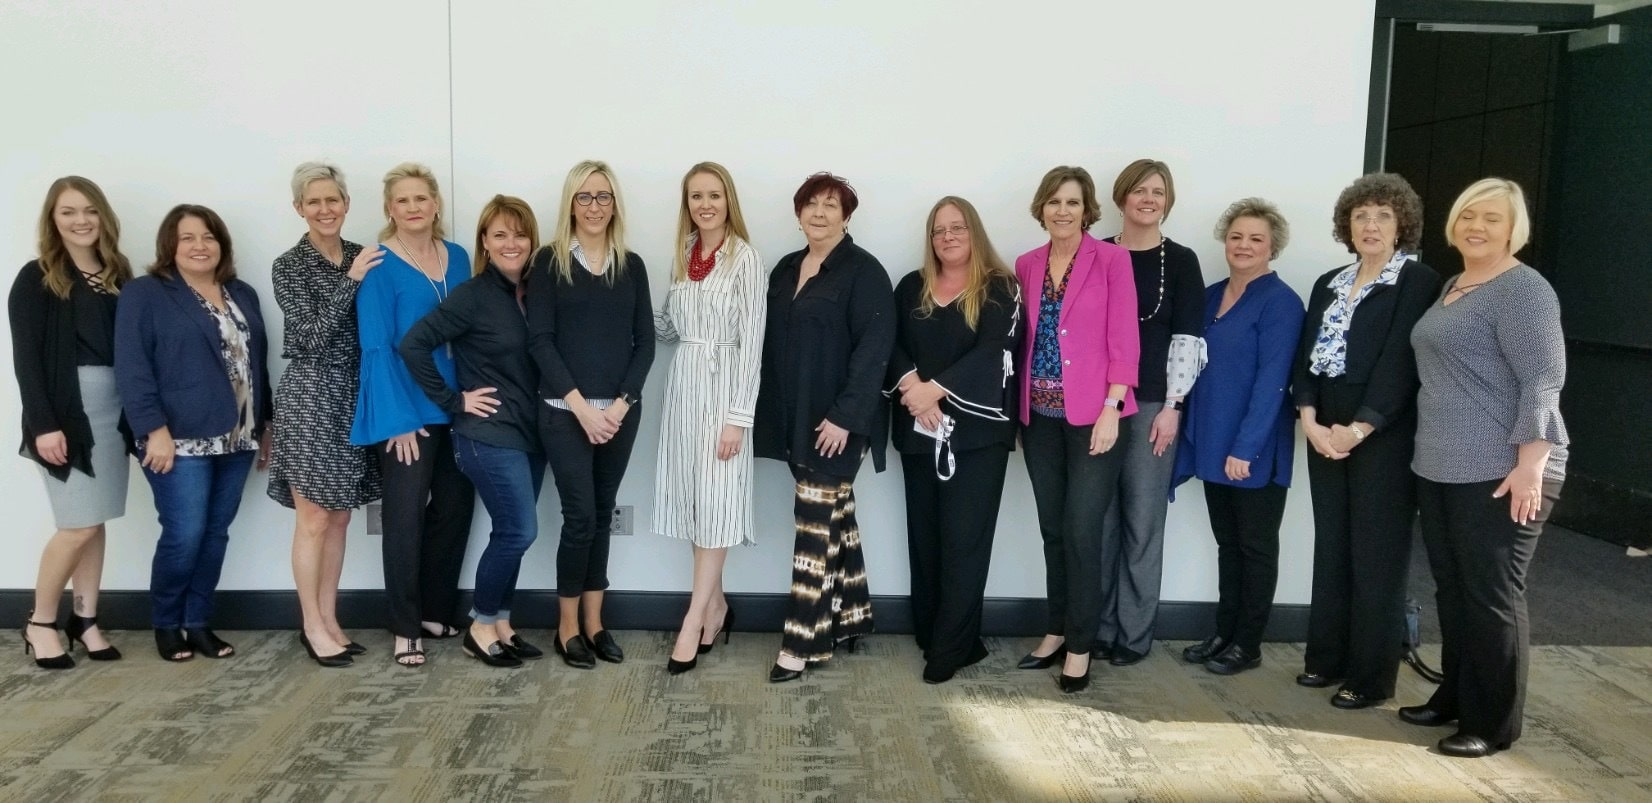 Women Grocers of America Board of Directors